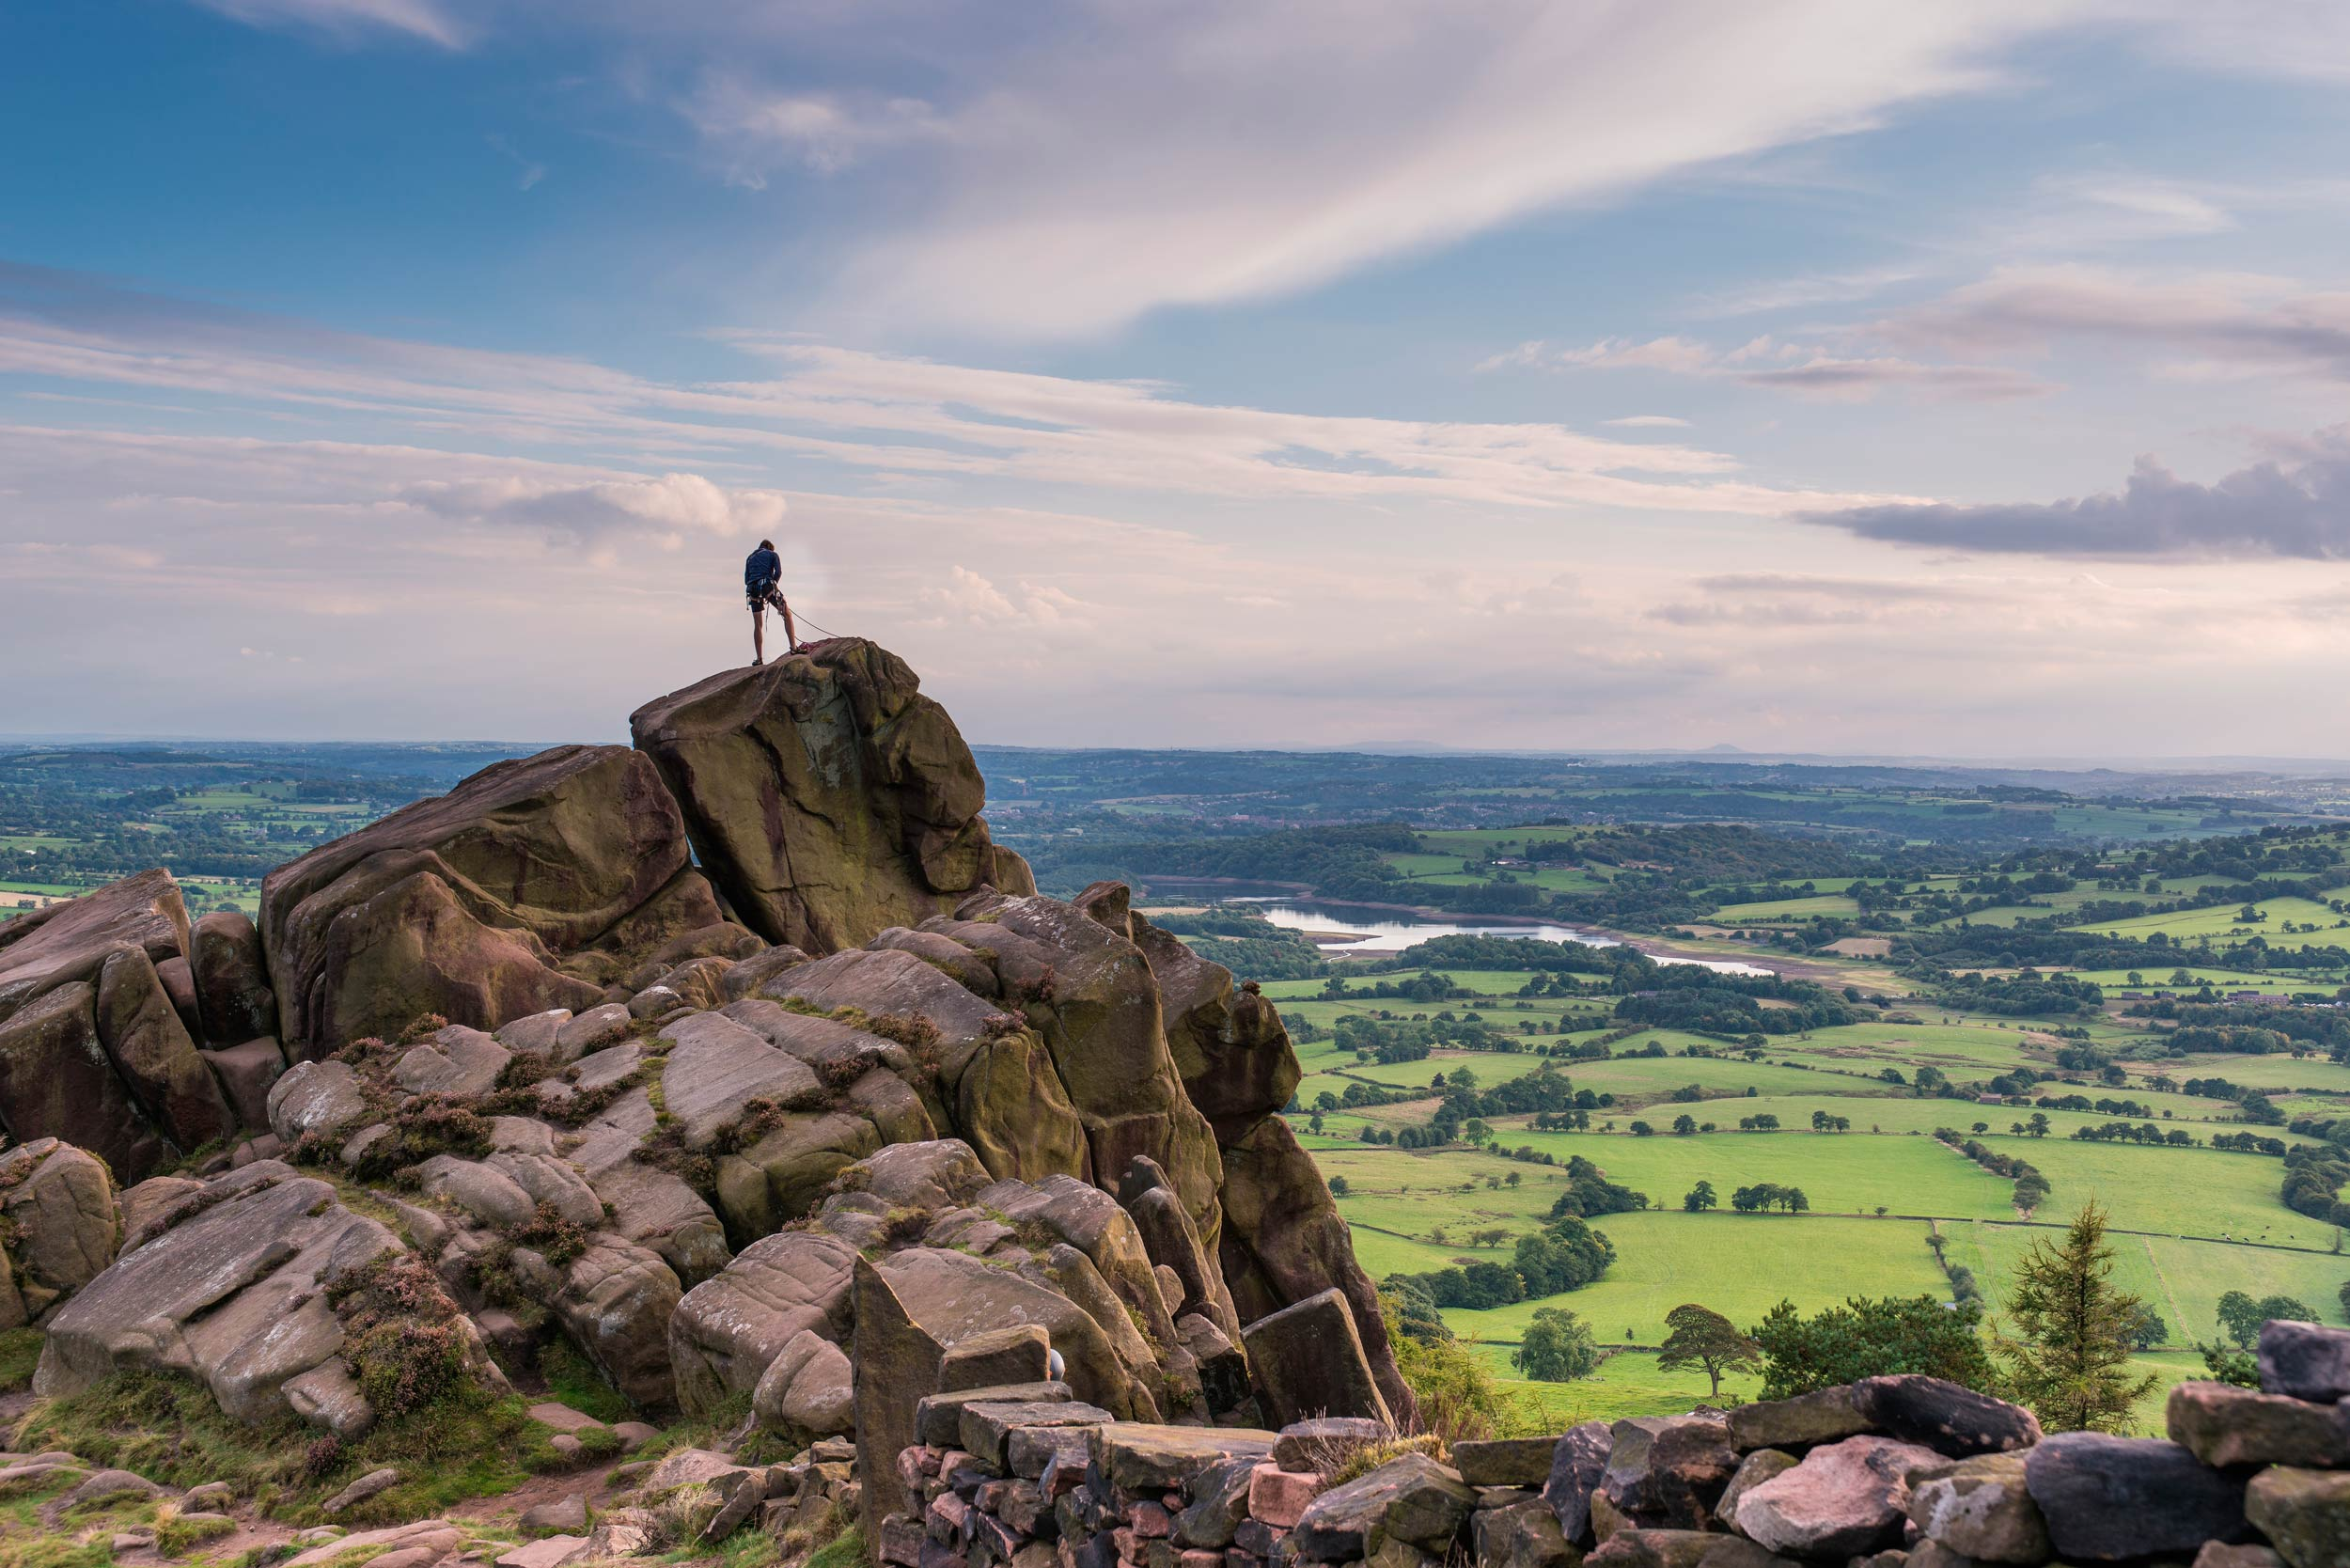 The Roaches,with views to Tittesworth Reservoir,Peak District, England  (Sponner/Shutterstock)